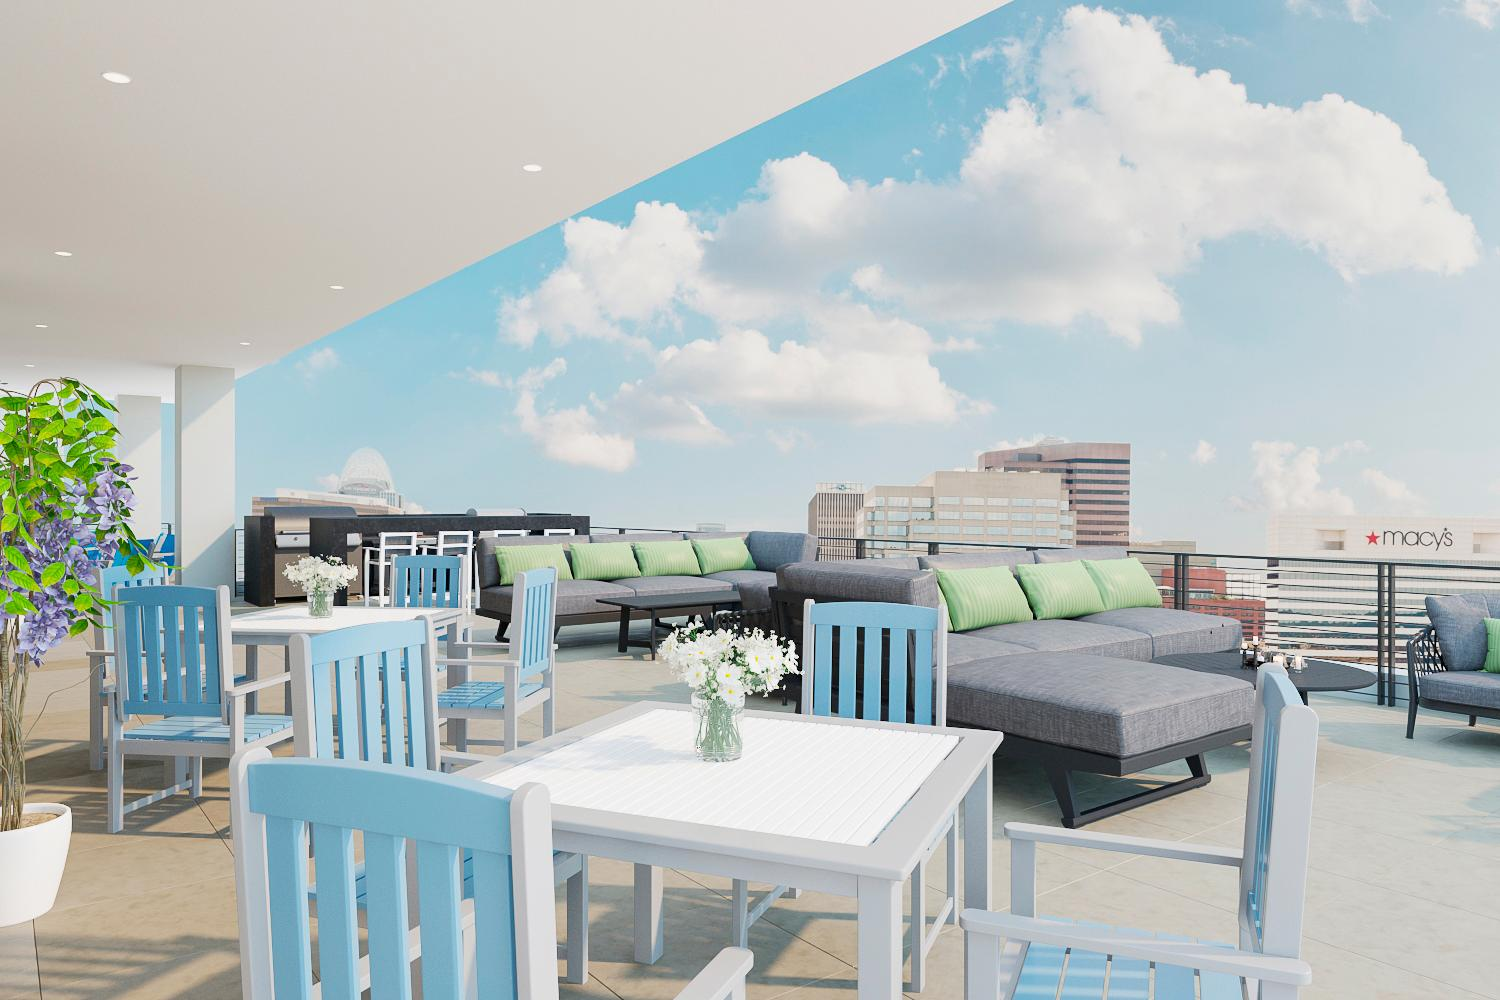 The rooftop will feature a grill, an astroturf green space, a kitchen, and seating. This is a rendering of that space as it's currently under construction. / Rendering by The Oval Room // Published: 9.2.19